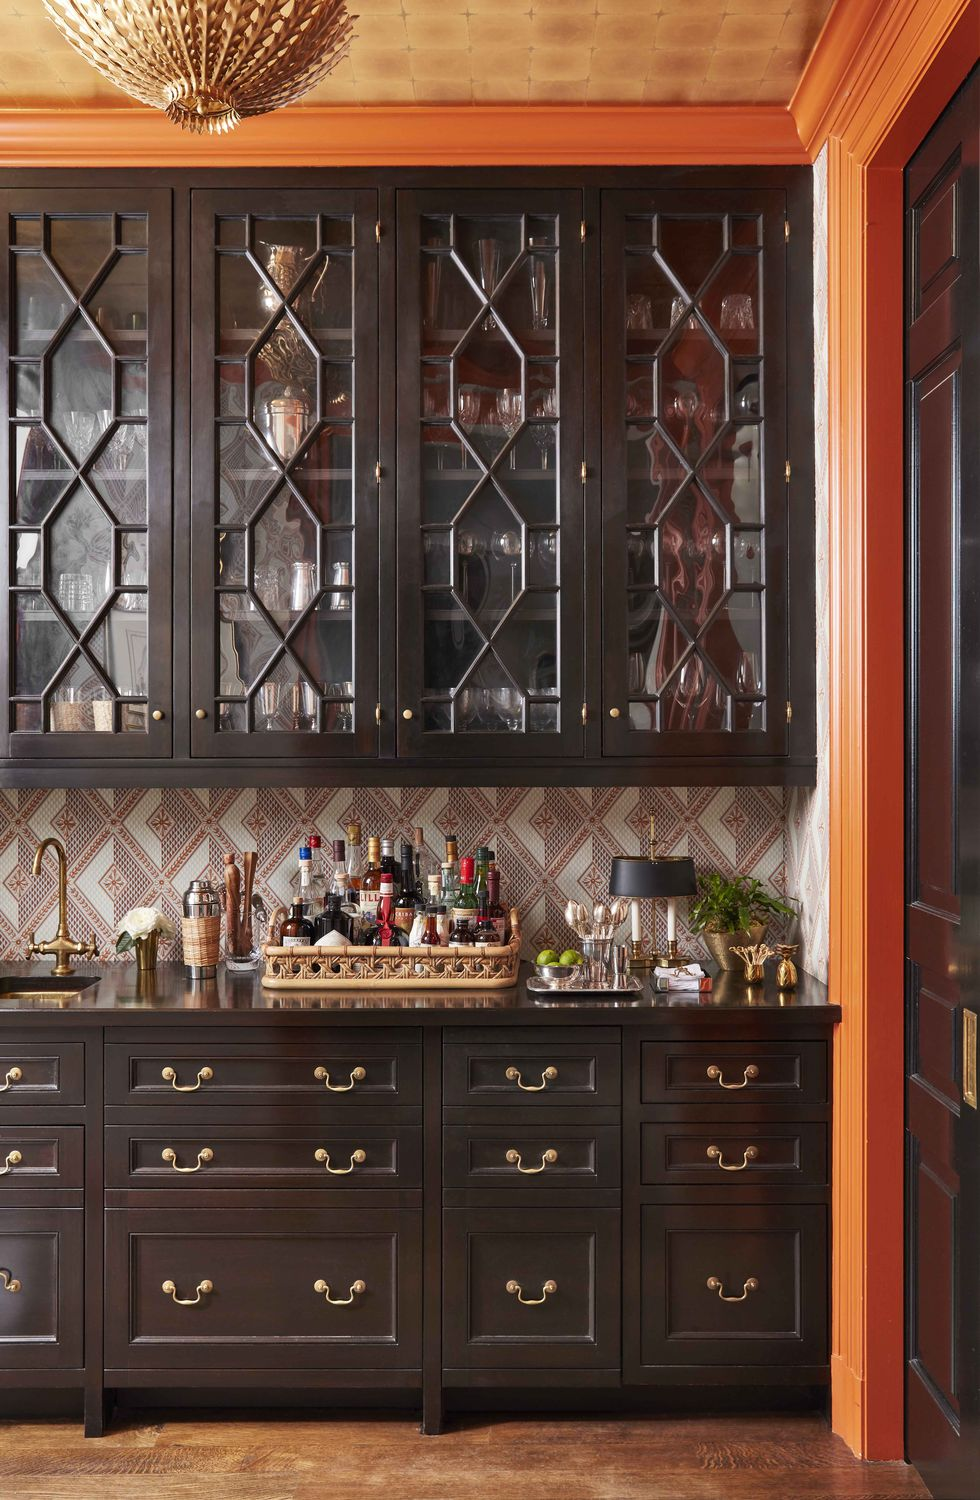 Built-in Bar of Caroline Gidiere's Birmingham Alabama home